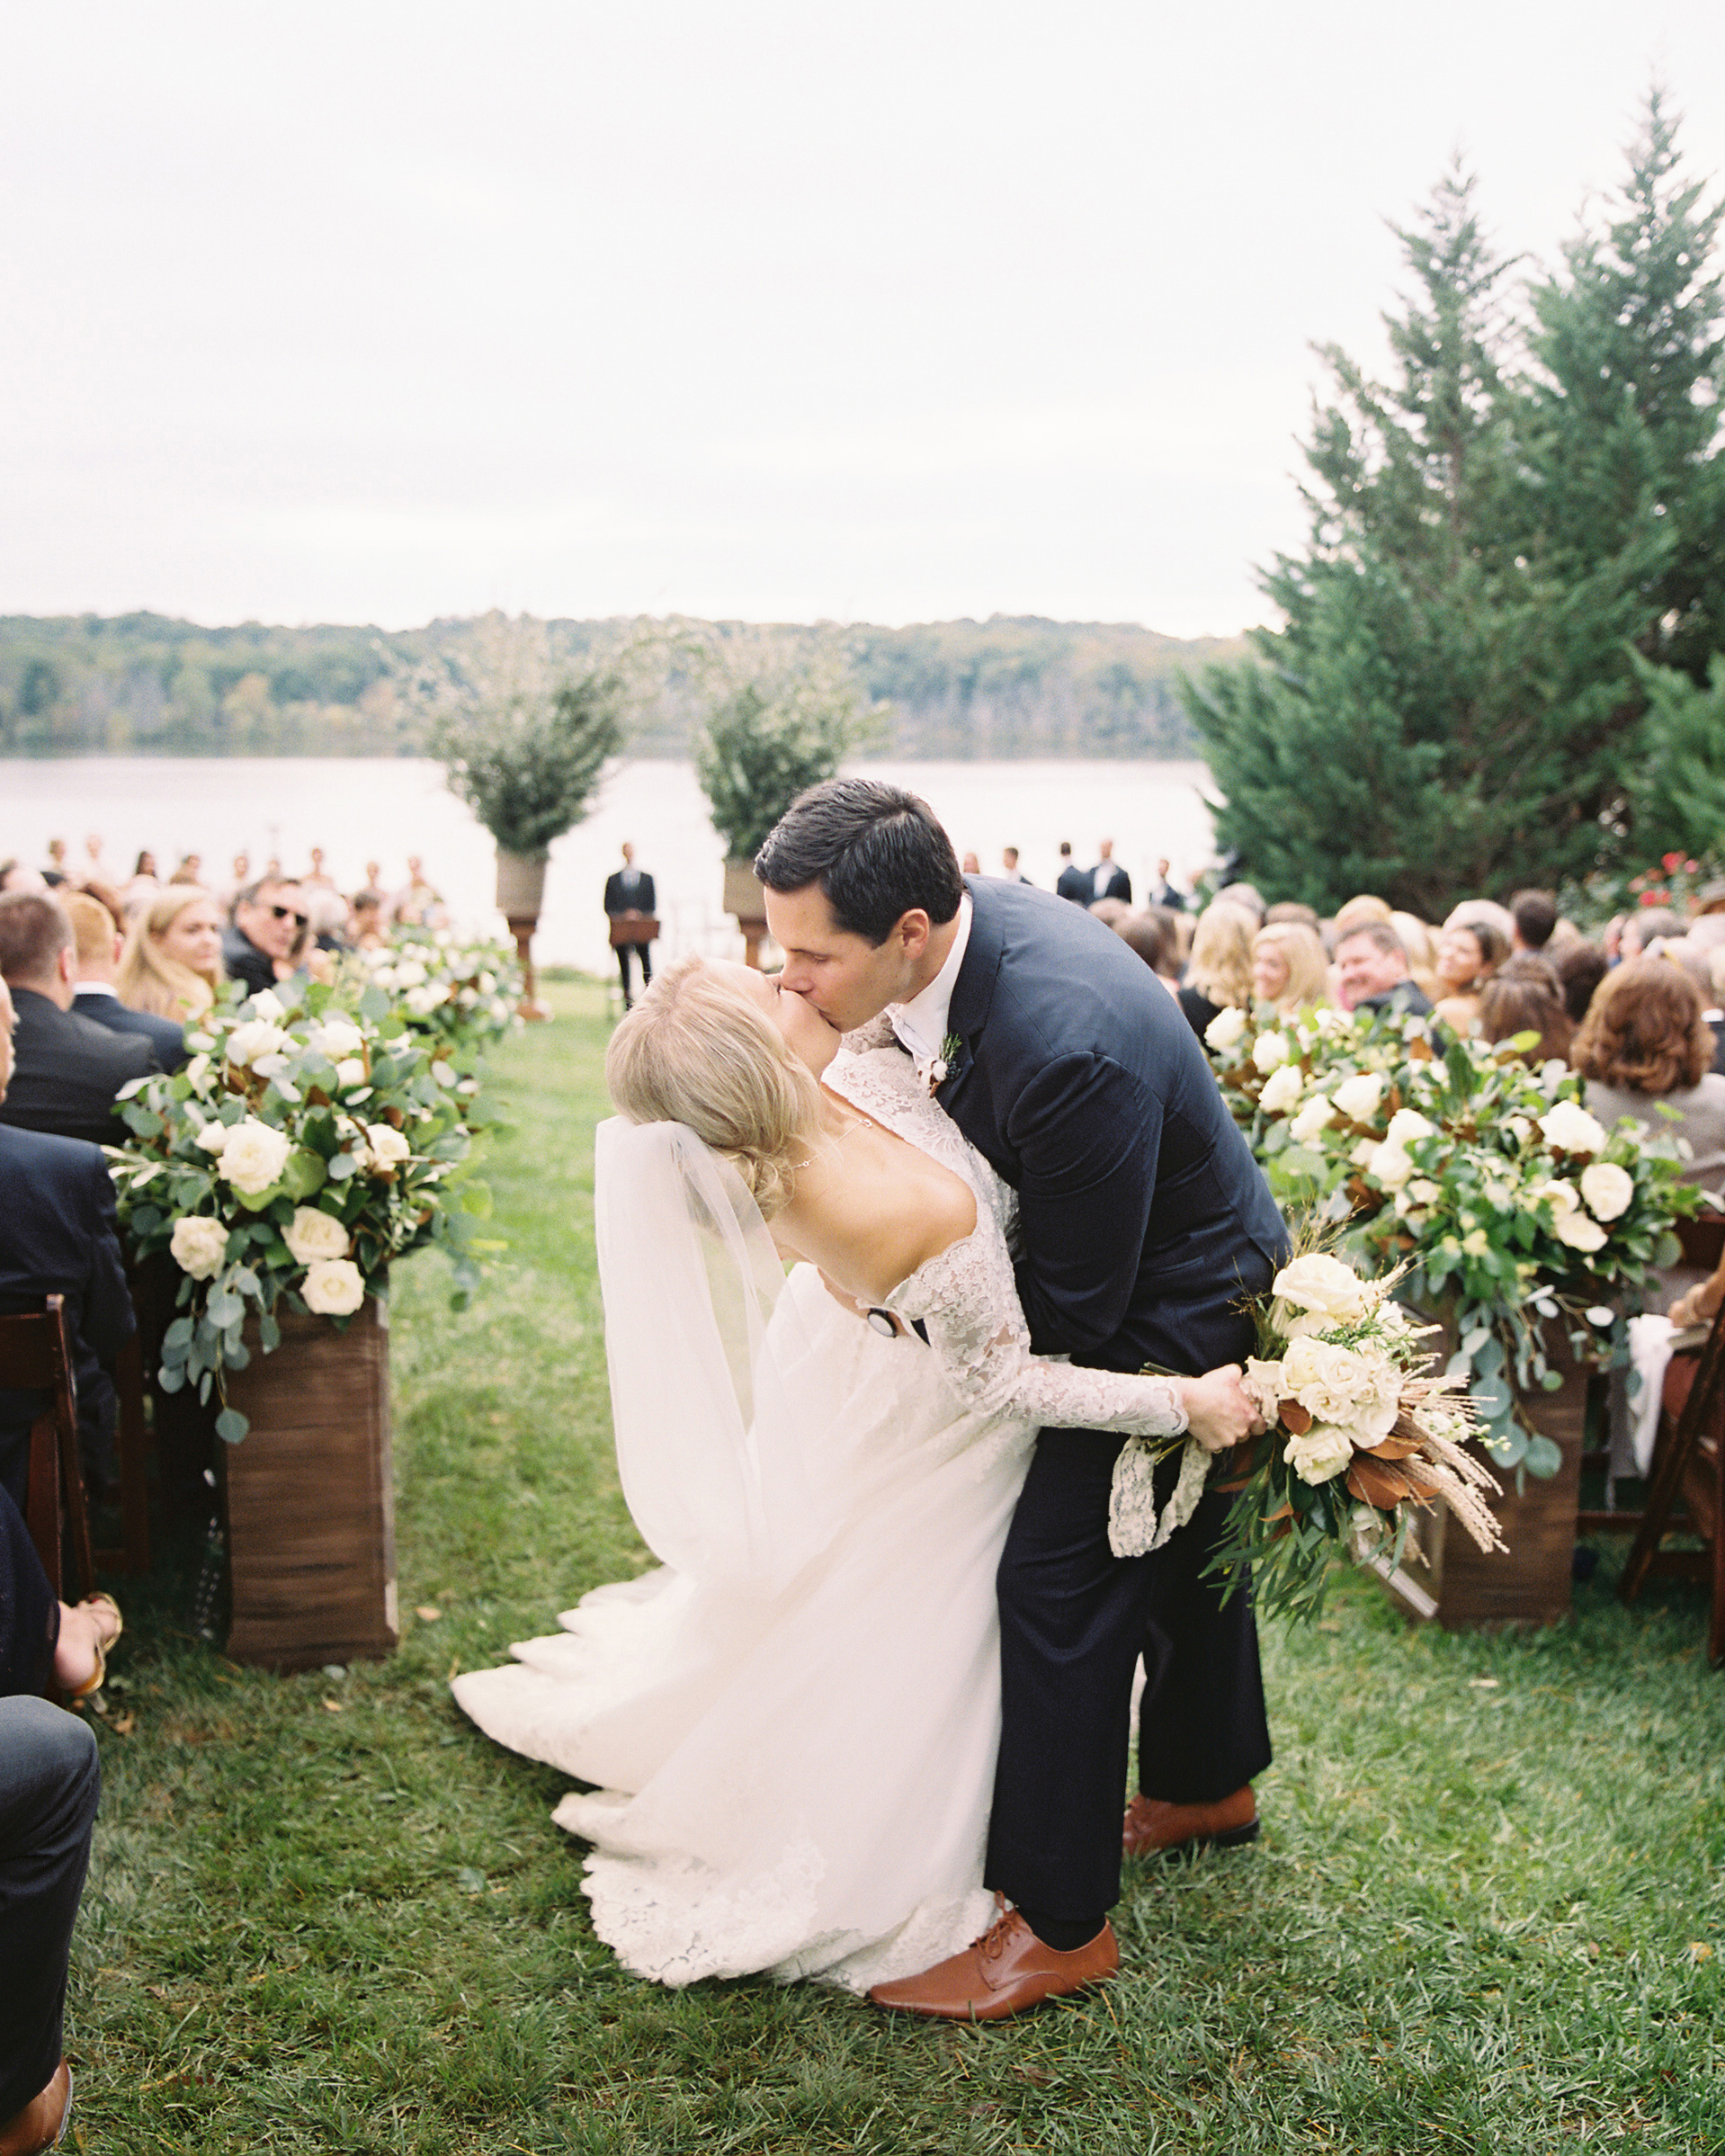 kendall nick wedding before ceremony kiss